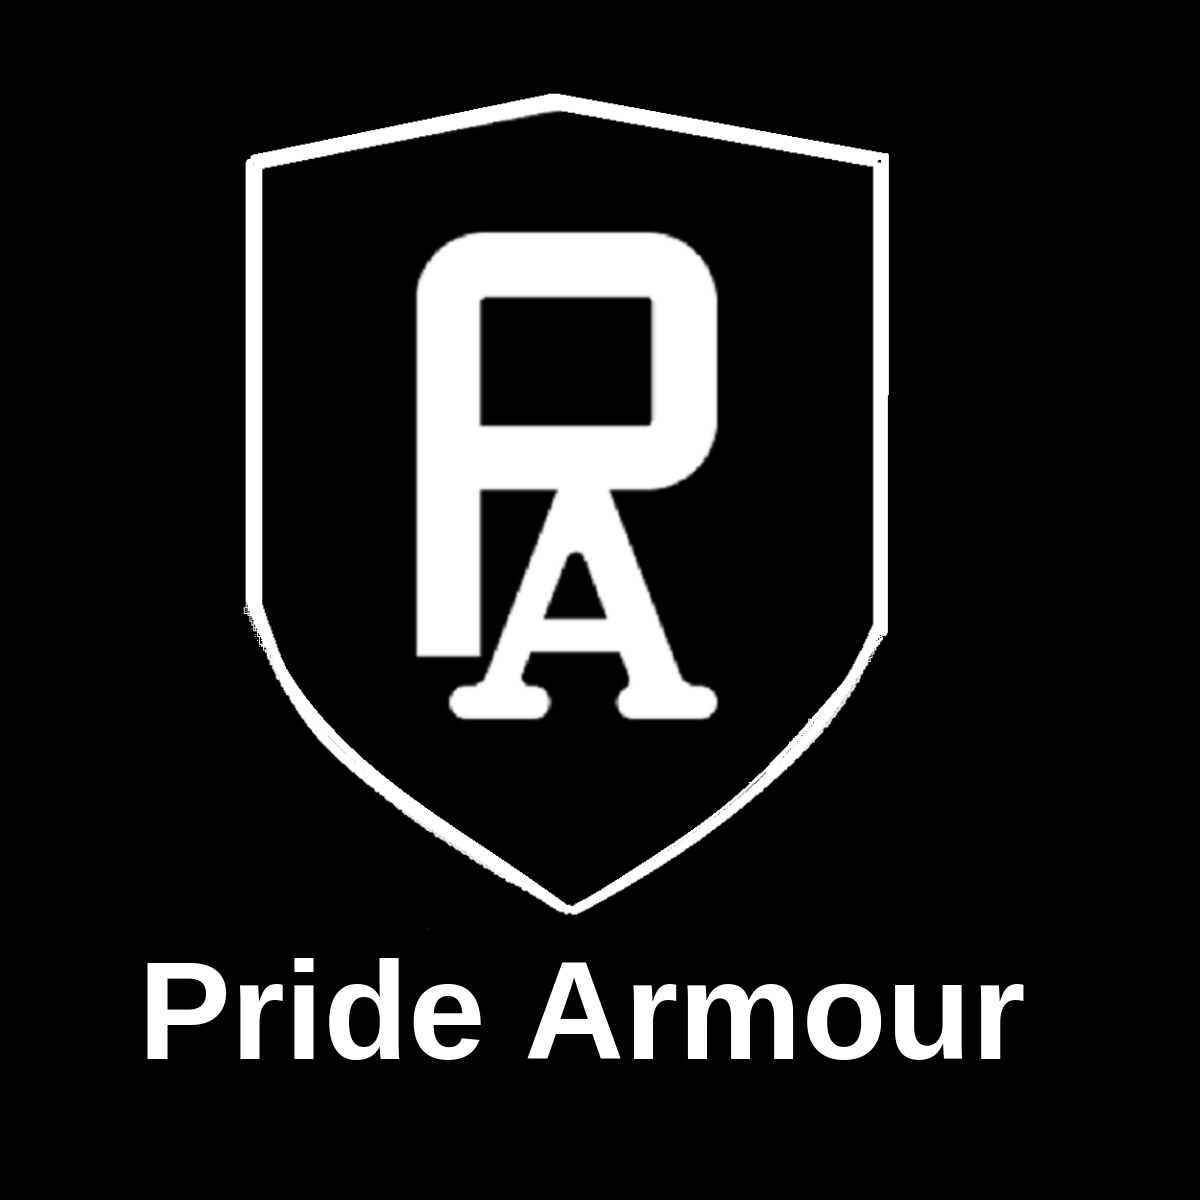 Pride Armour   Tampa, Florida, USA   Online Shopping Portals   OraPages.com - FREE Business          Directory